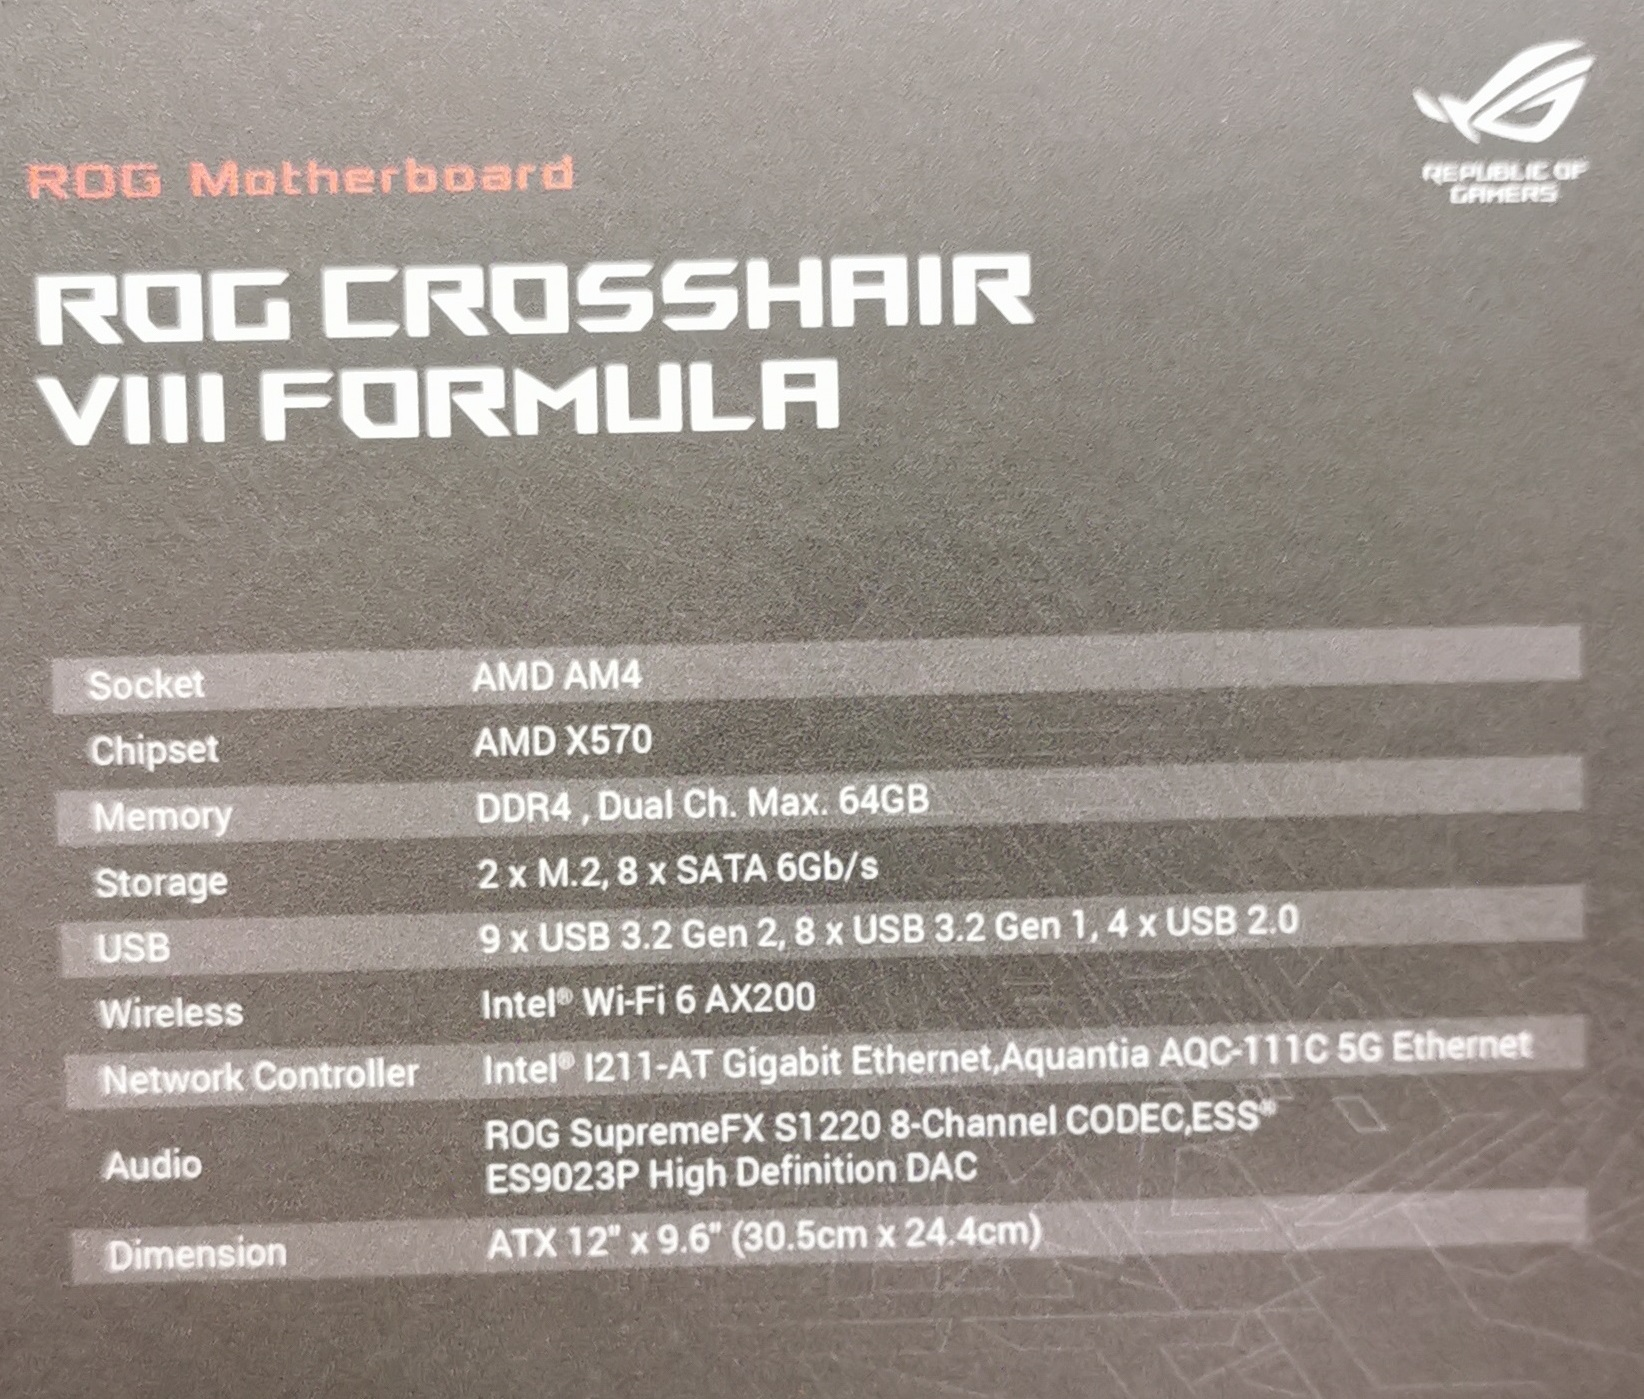 ASUS Announces its X570 Flagship Motherboard, the Crosshair VIII Formula